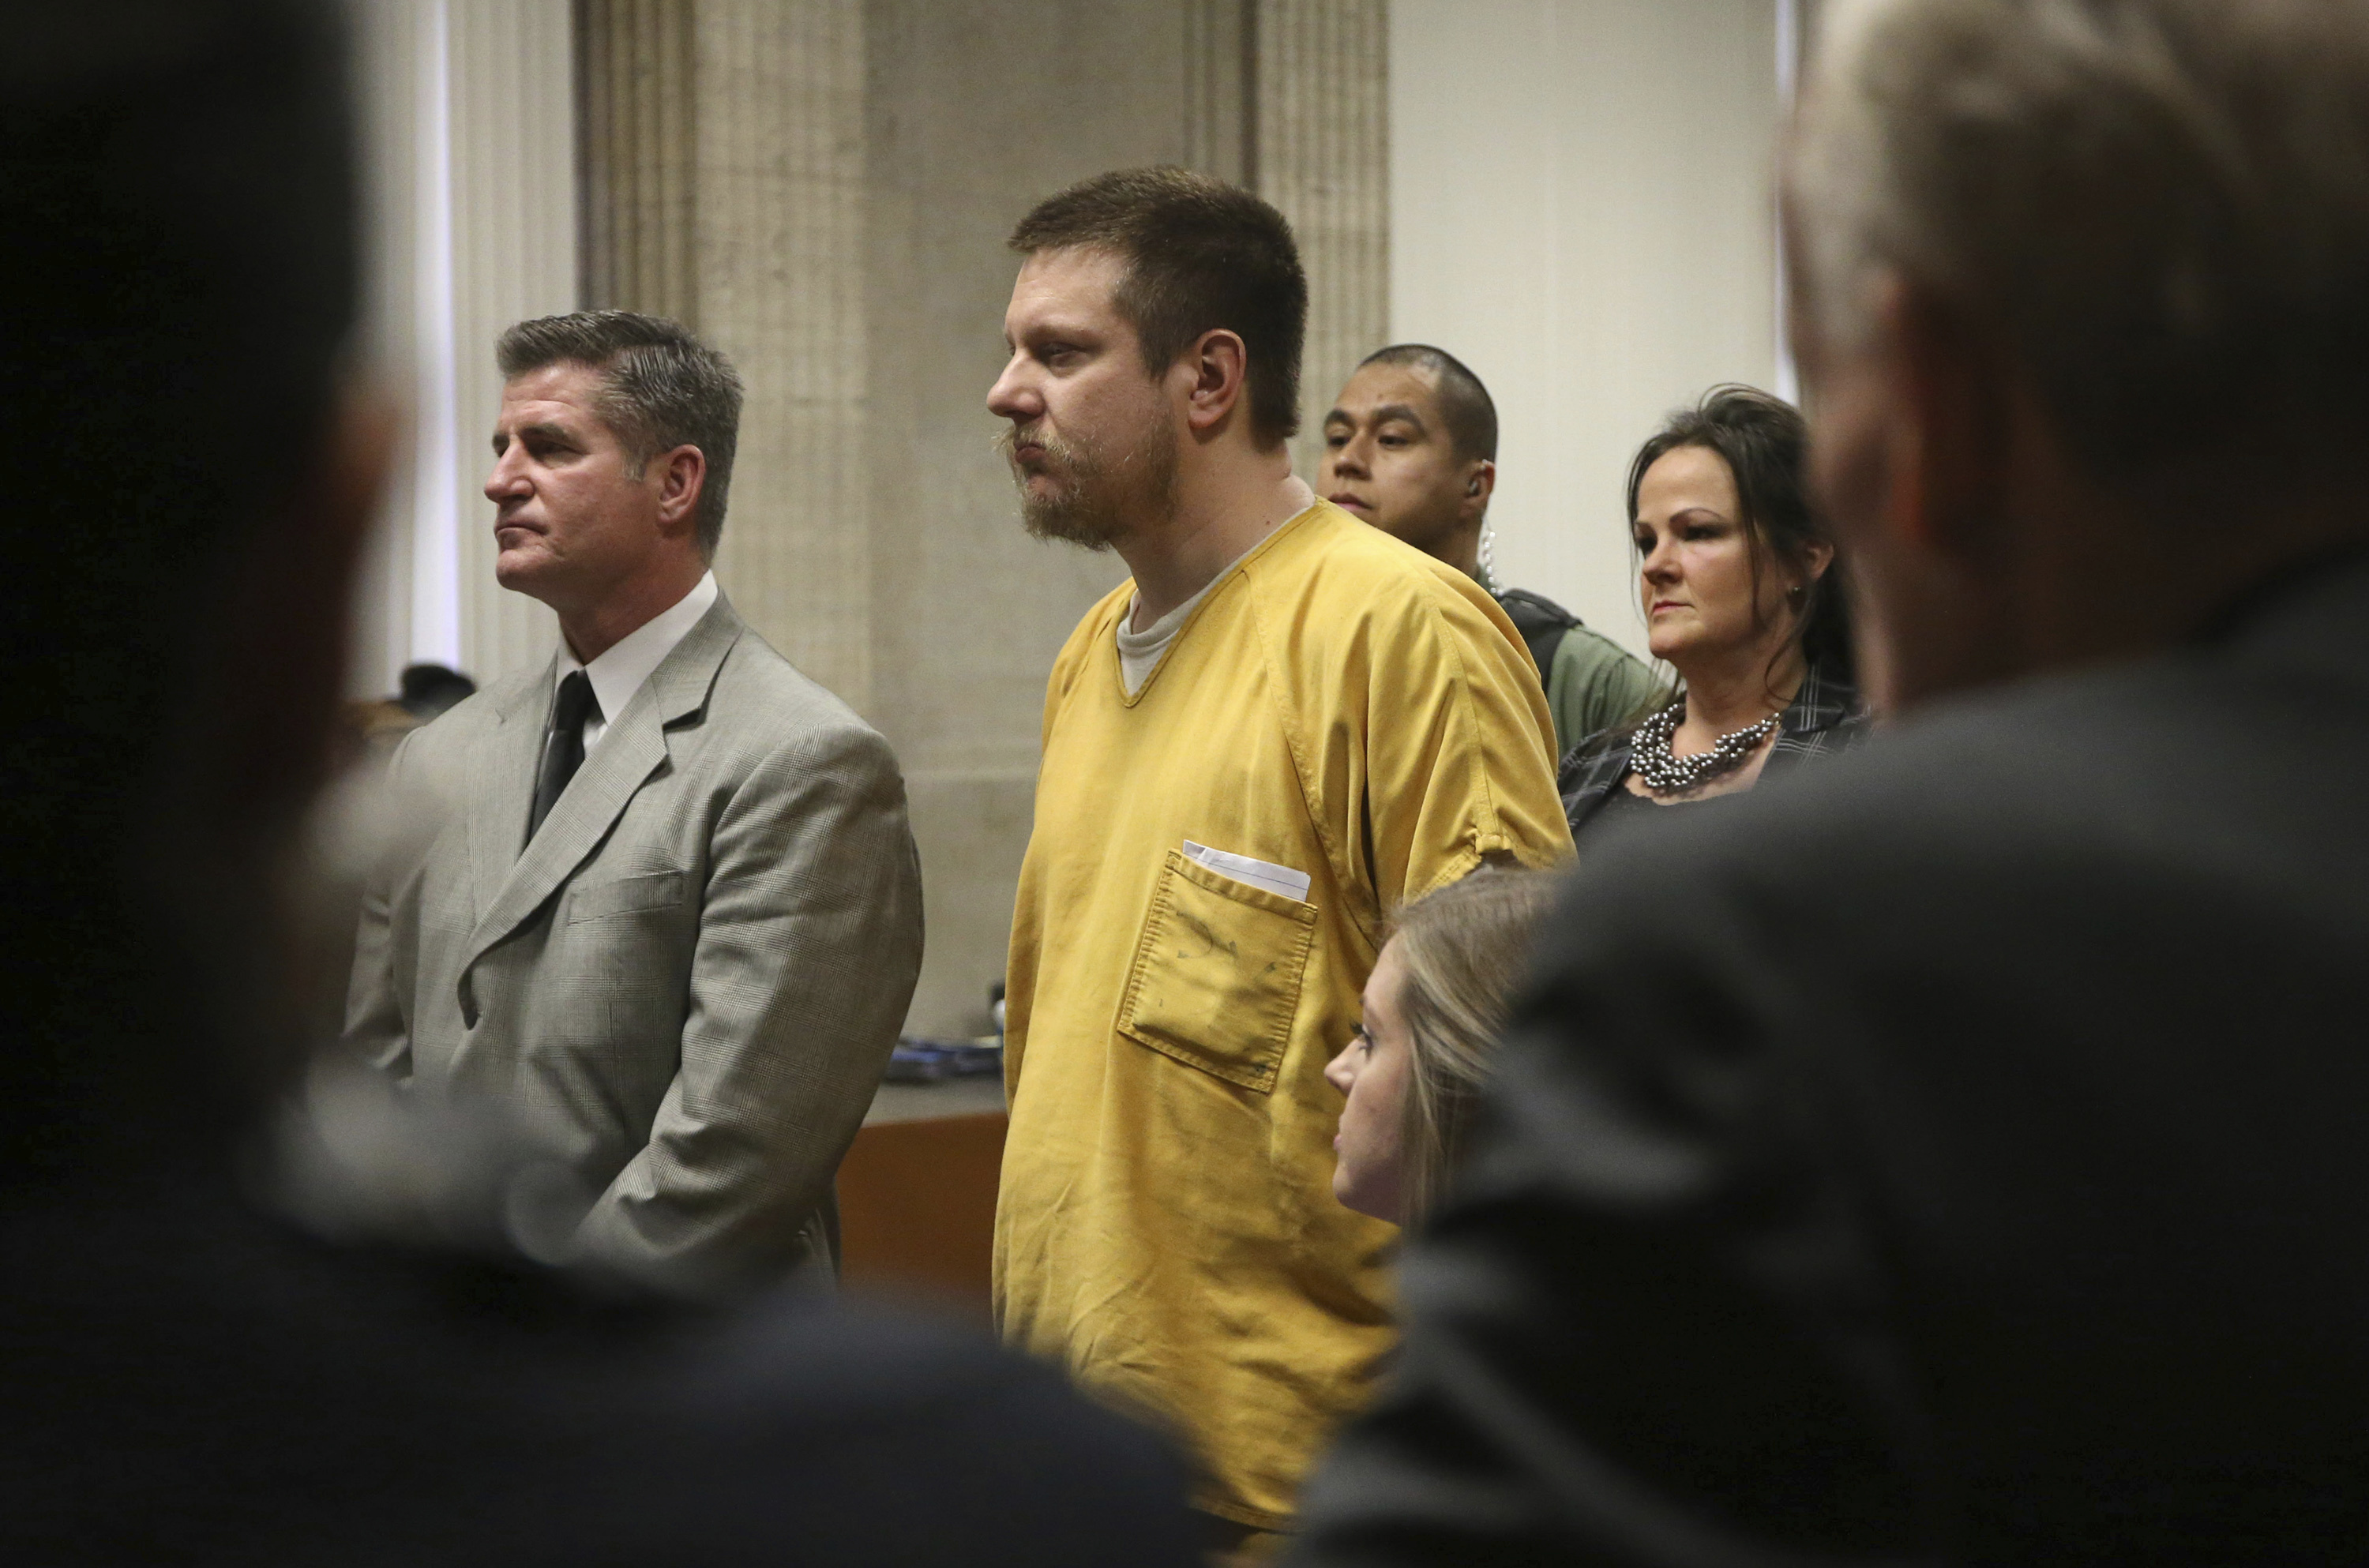 Former Chicago police Officer Jason Van Dyke and his attorney Daniel Herbert attend Van Dyke's sentencing hearing at the Leighton Criminal Court Building Friday, Jan. 18, 2019 in Chicago.(Antonio Perez/ Chicago Tribune via AP, Pool)